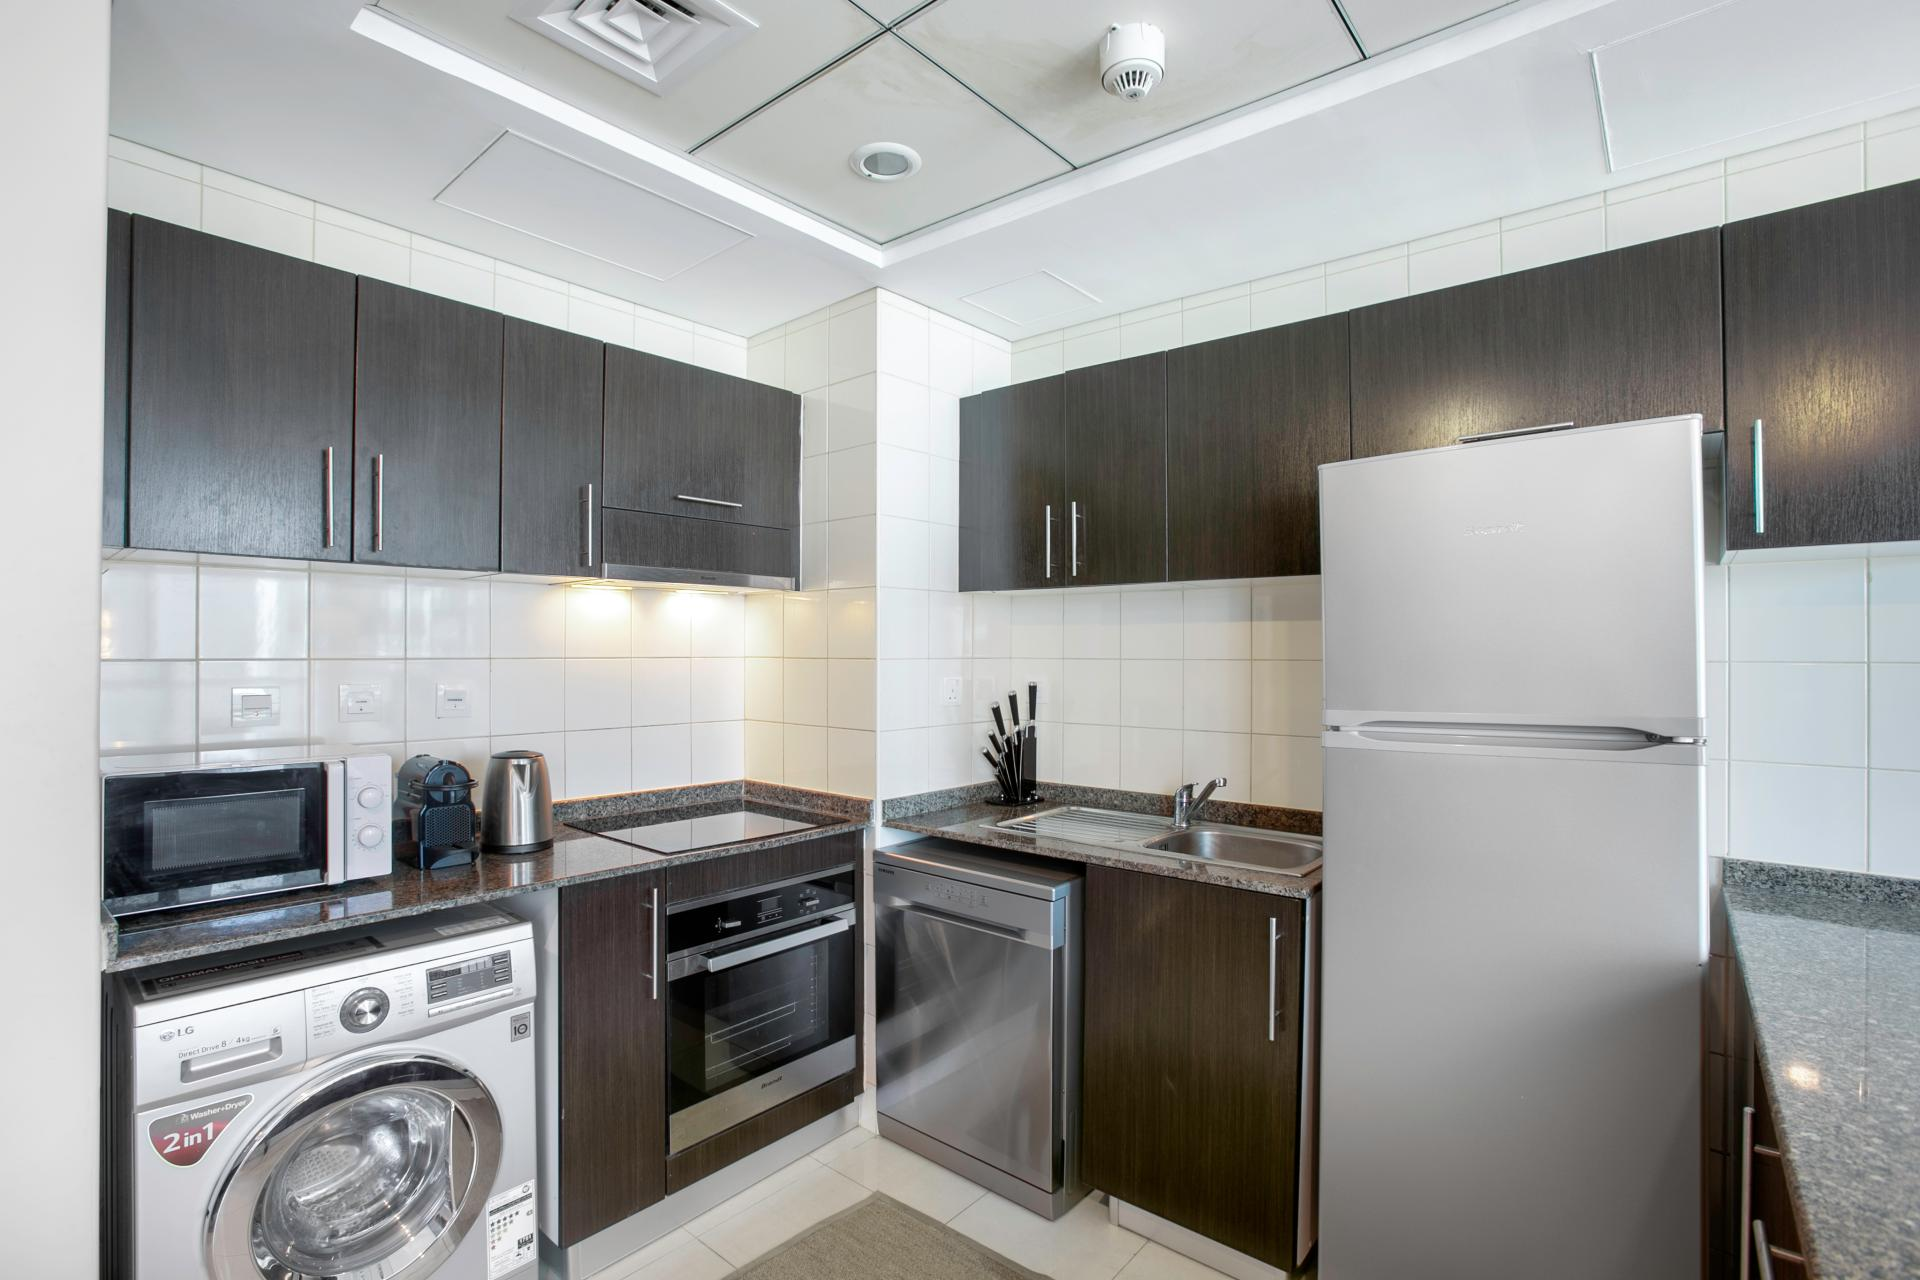 Kitchen at Royal Oceanic Apartment